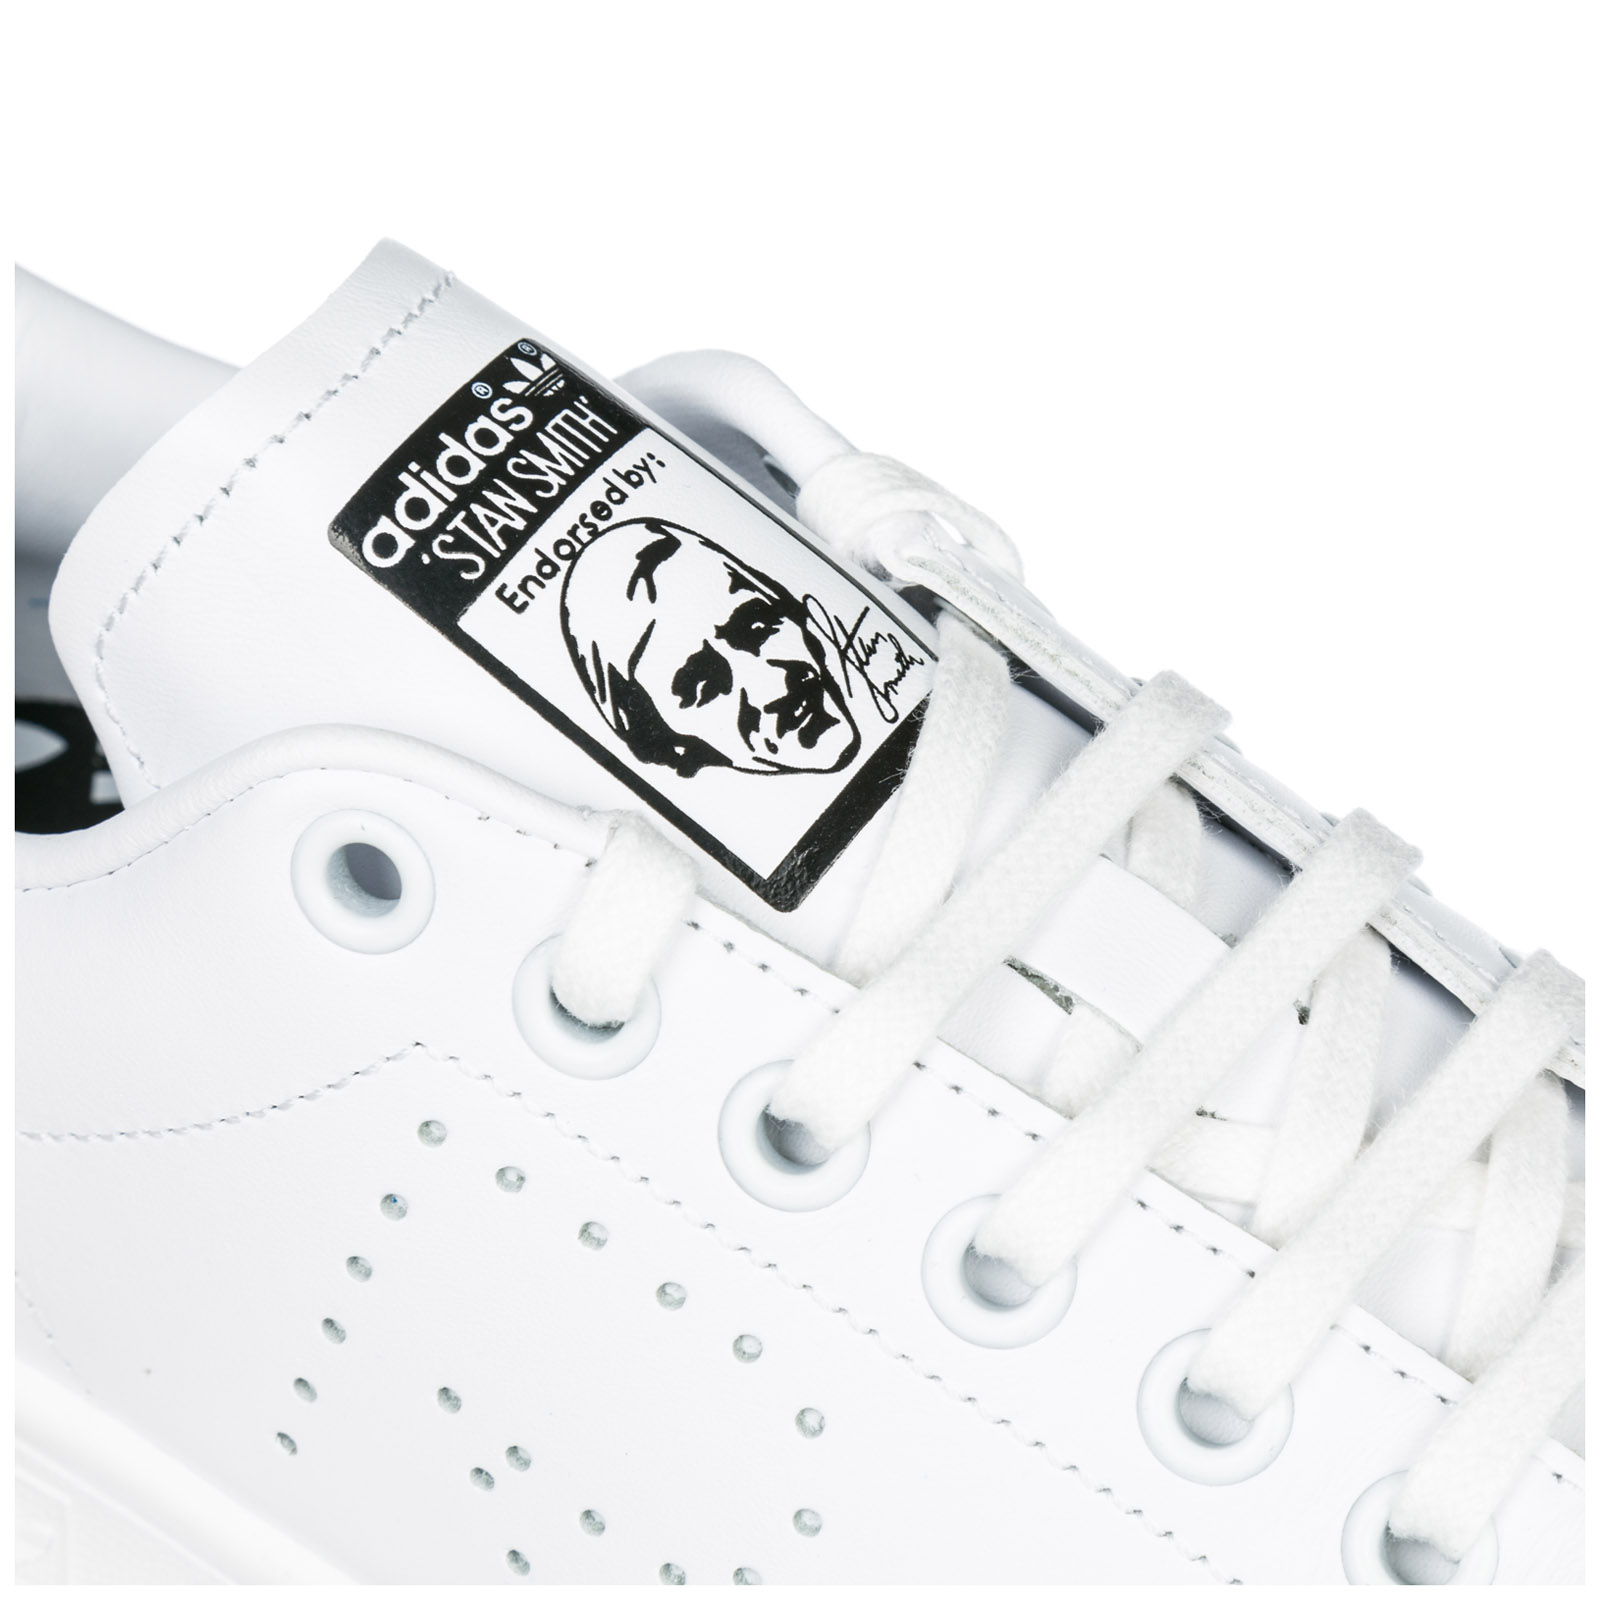 Men's shoes leather trainers sneakers stan smith